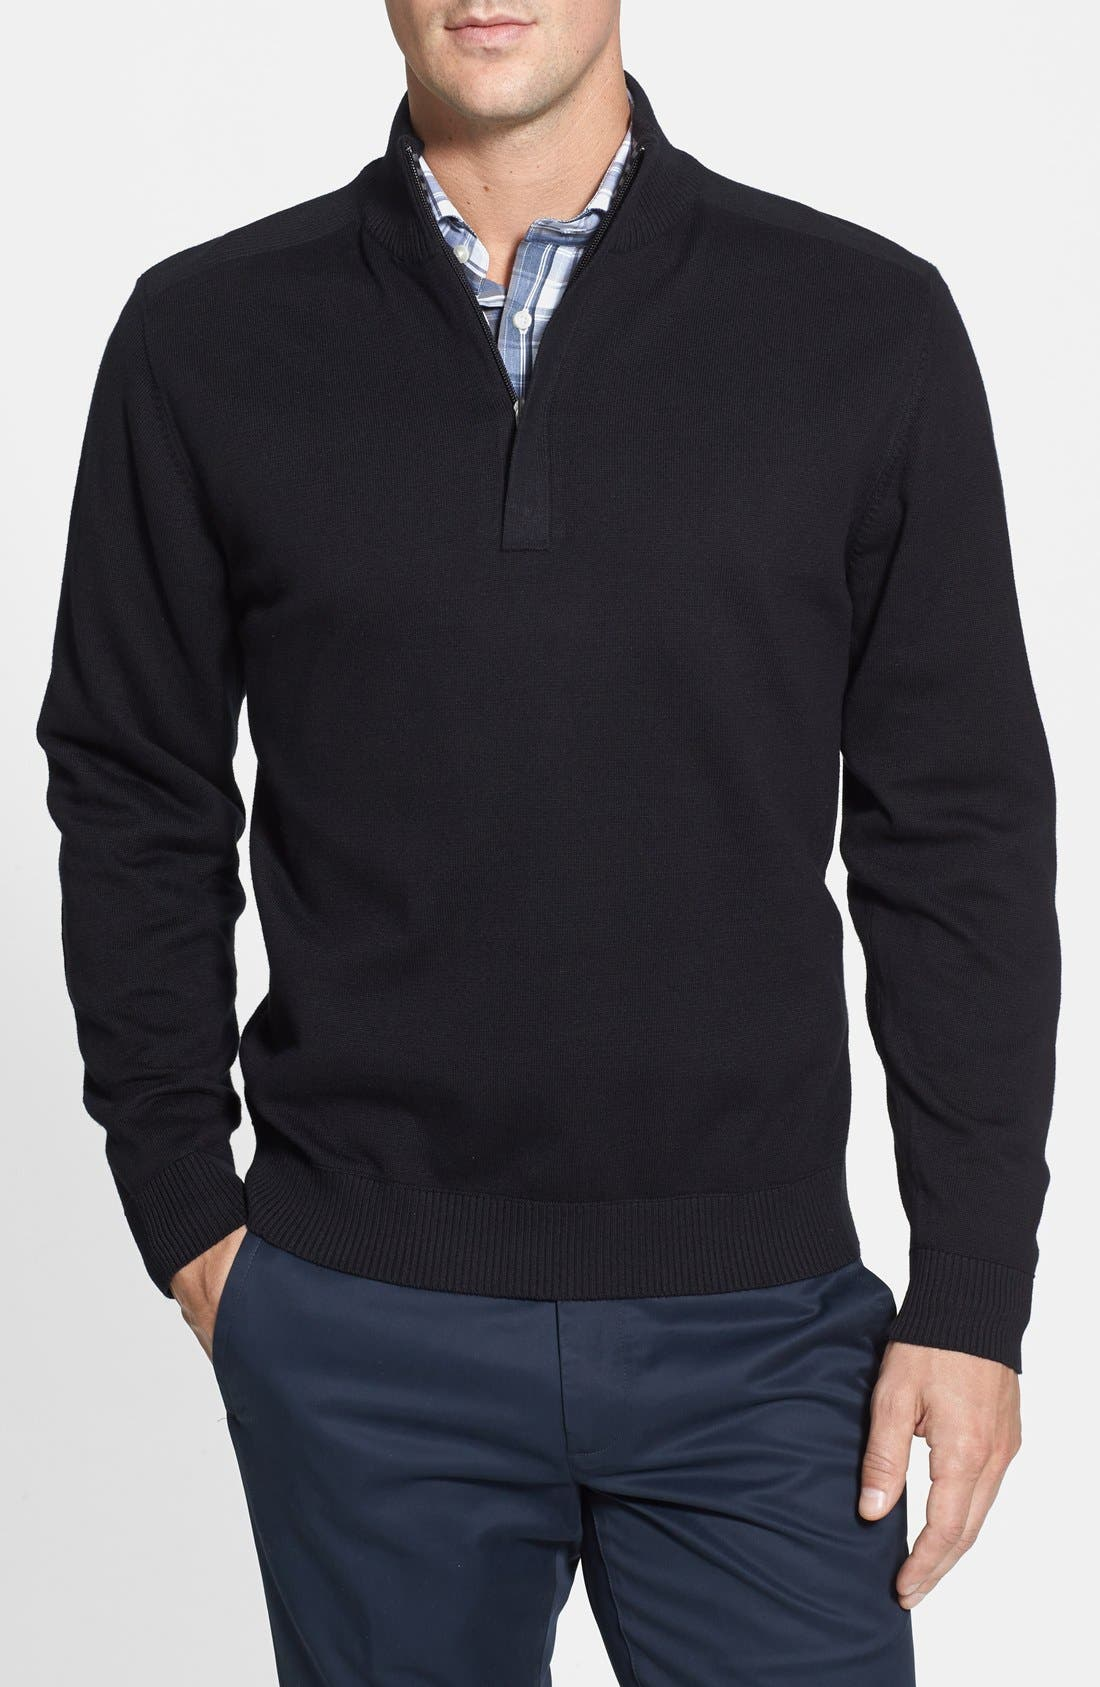 Main Image - Cutter & Buck Broadview Half Zip Sweater